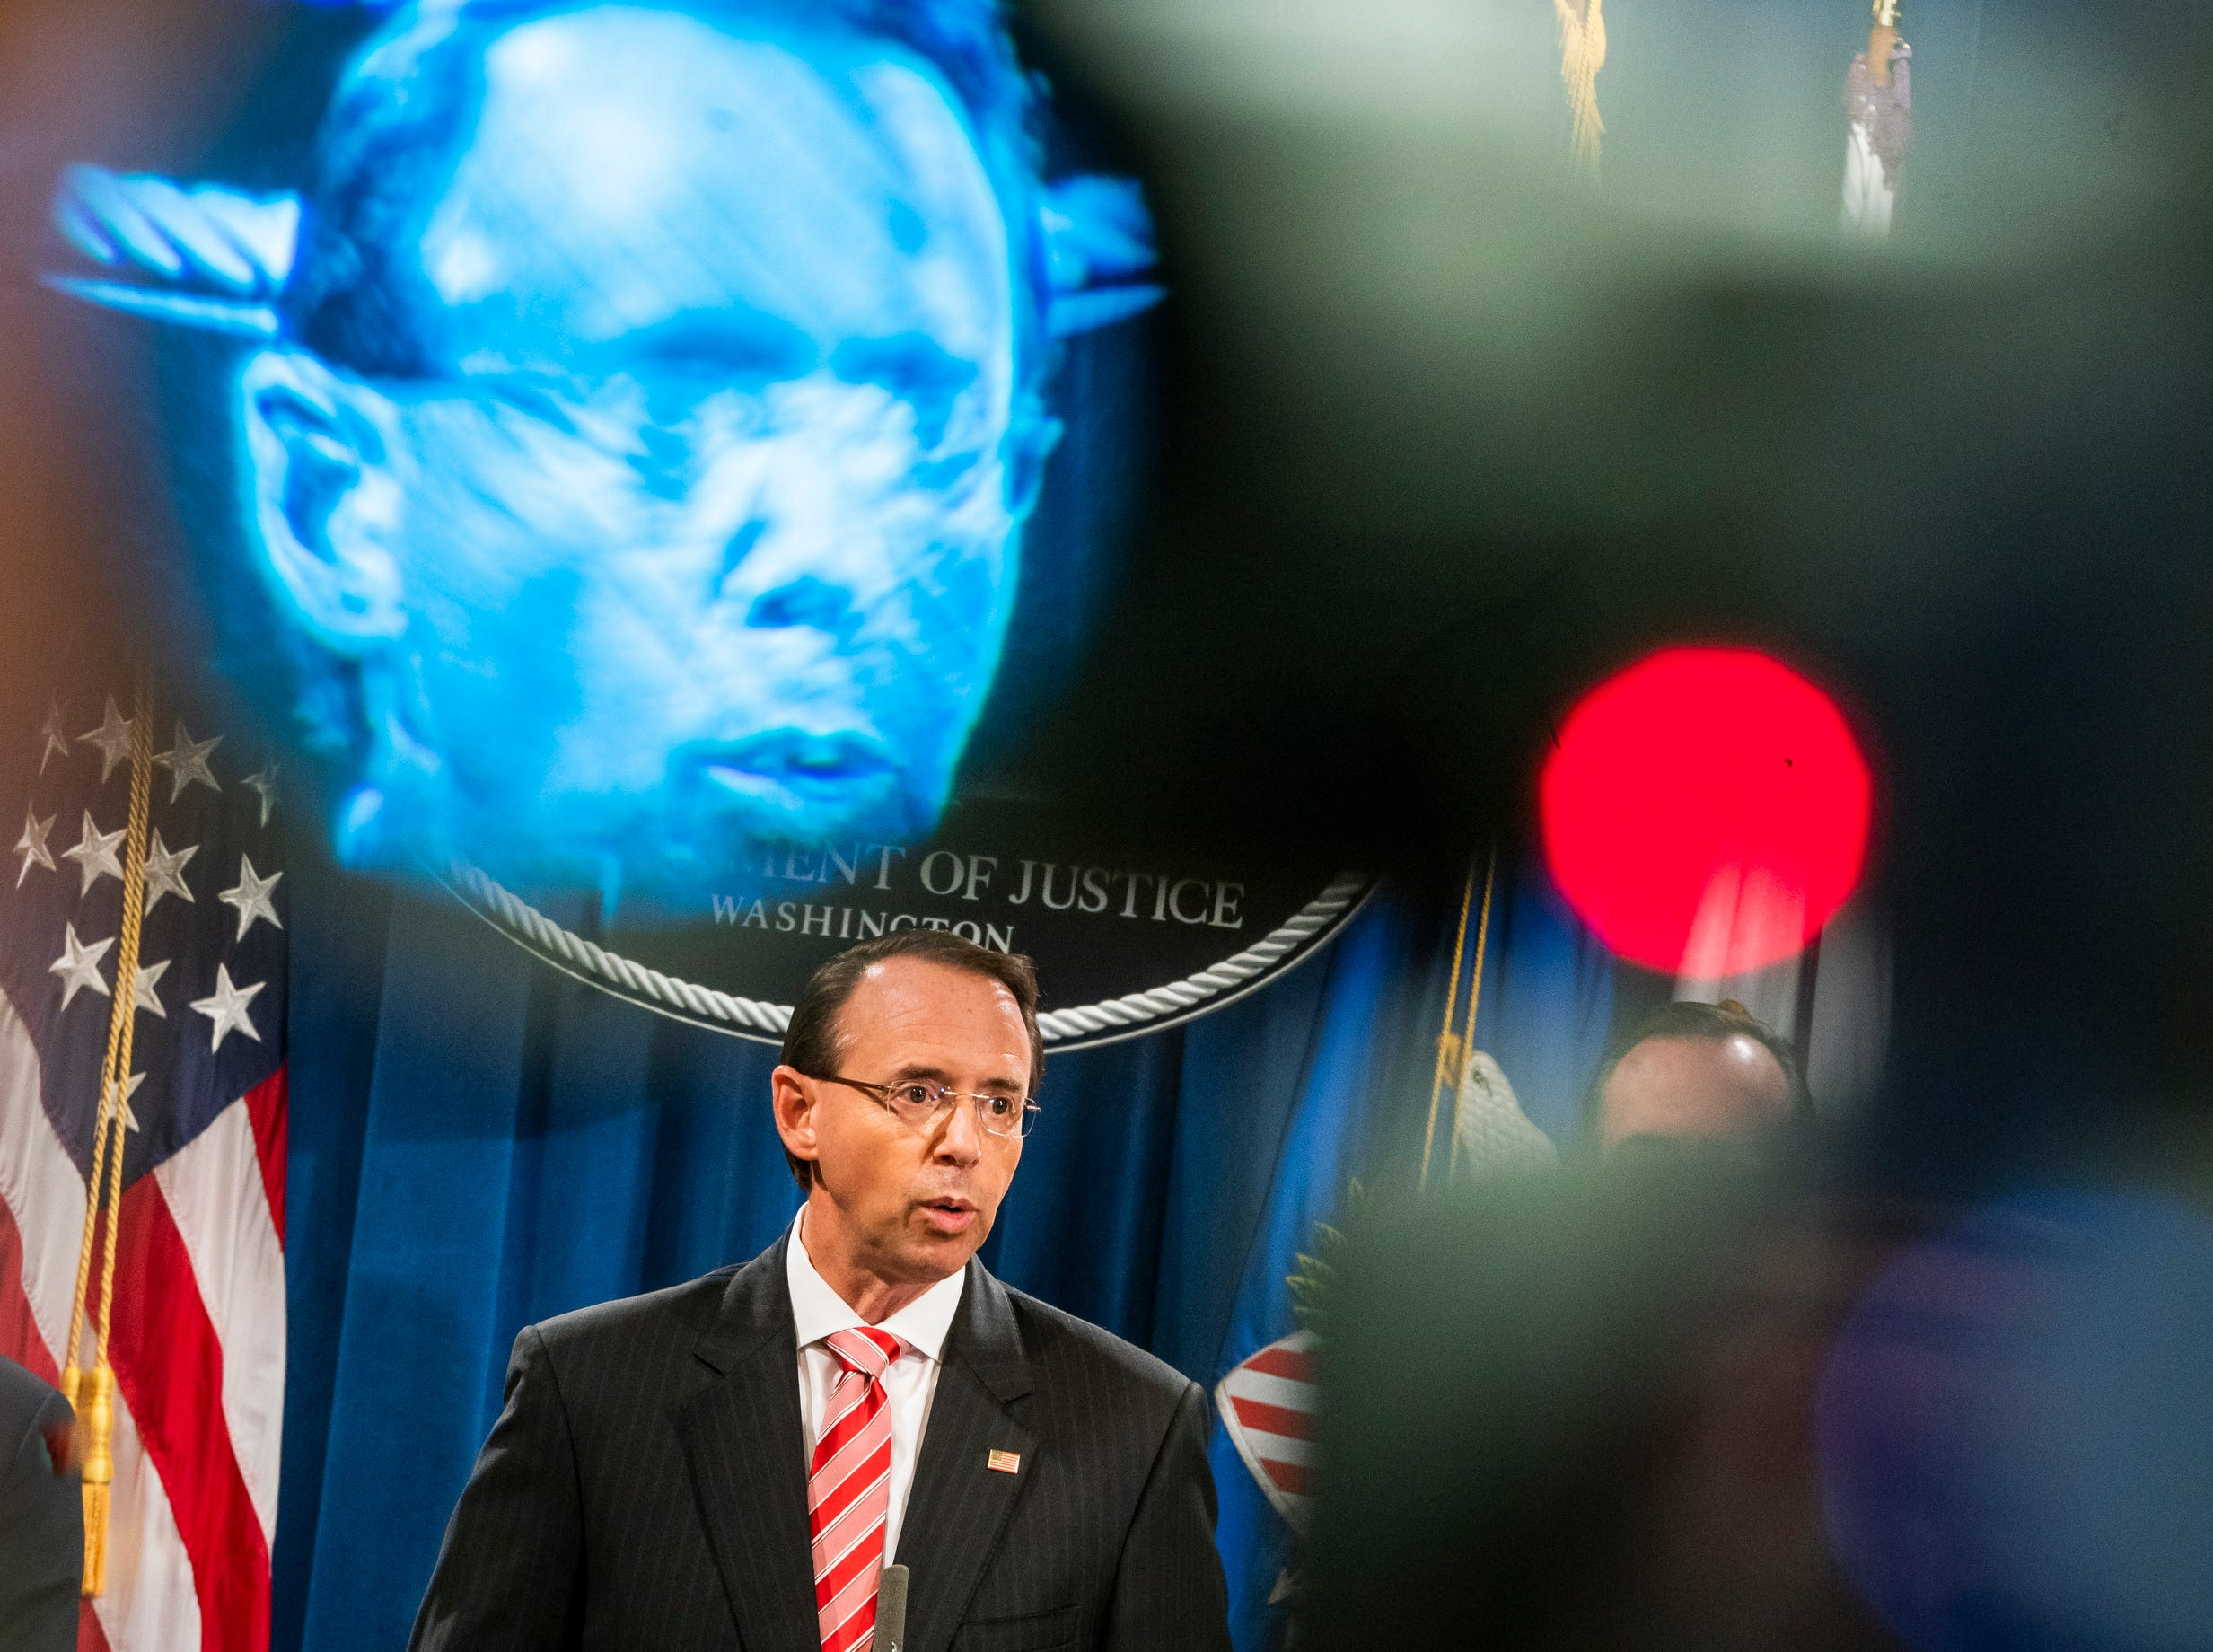 Deputy Attorney General Rod Rosenstein is seen in the viewfinder of a television camera as he announces that the Justice Department is indicting 12 Russian military officers for hacking Democratic emails during the 2016 presidential election at the Justice Department.. The Russians involved were working for the military intelligence service GRU, according to Rosenstein.